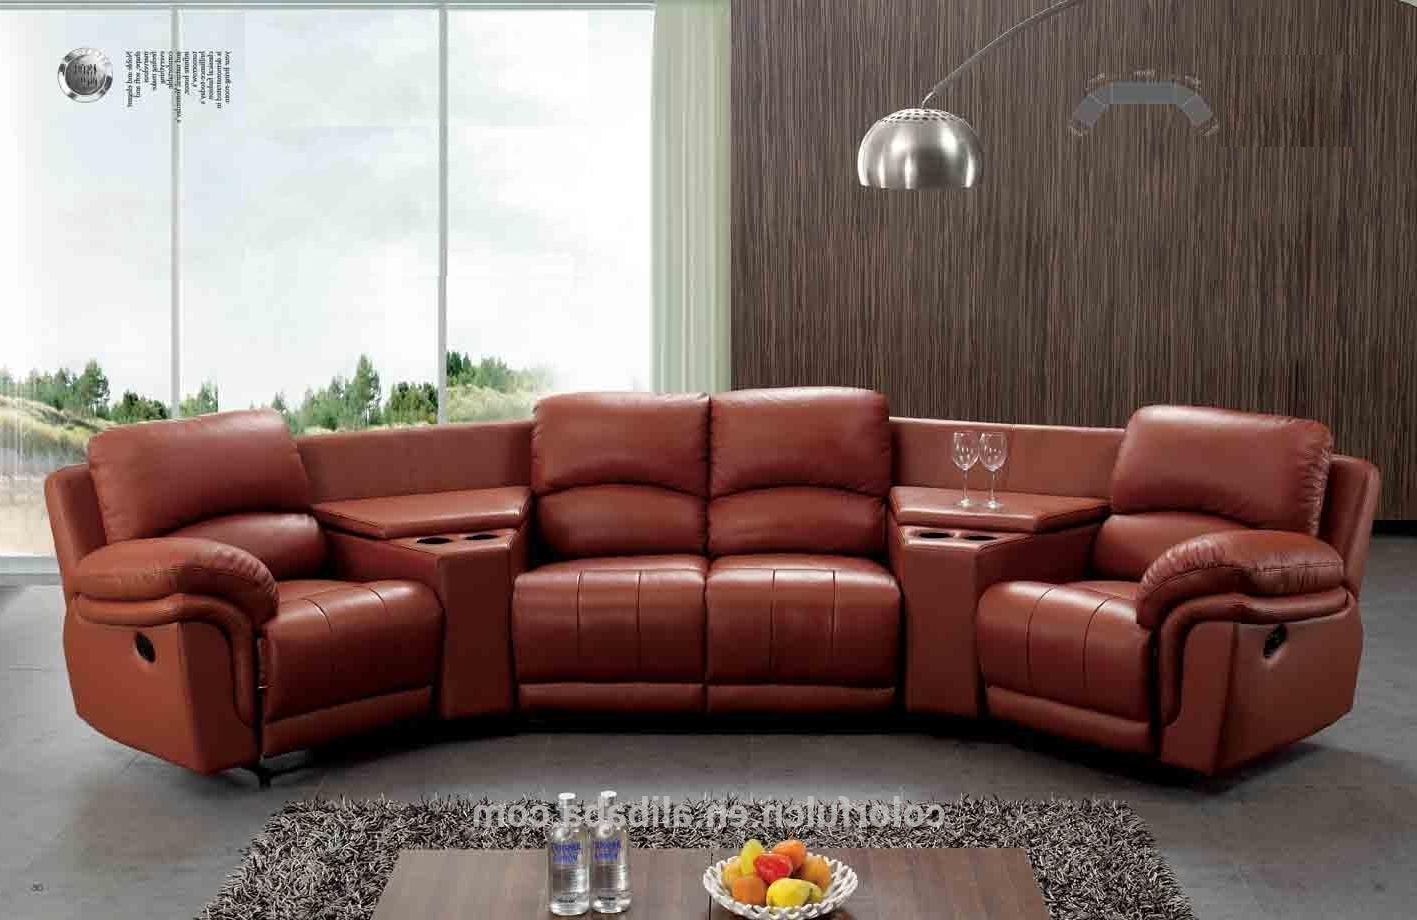 Best And Newest Sectional Sofa Design: Semi Circular Sectional Sofa Couches Round Intended For Semicircular Sofas (View 1 of 20)